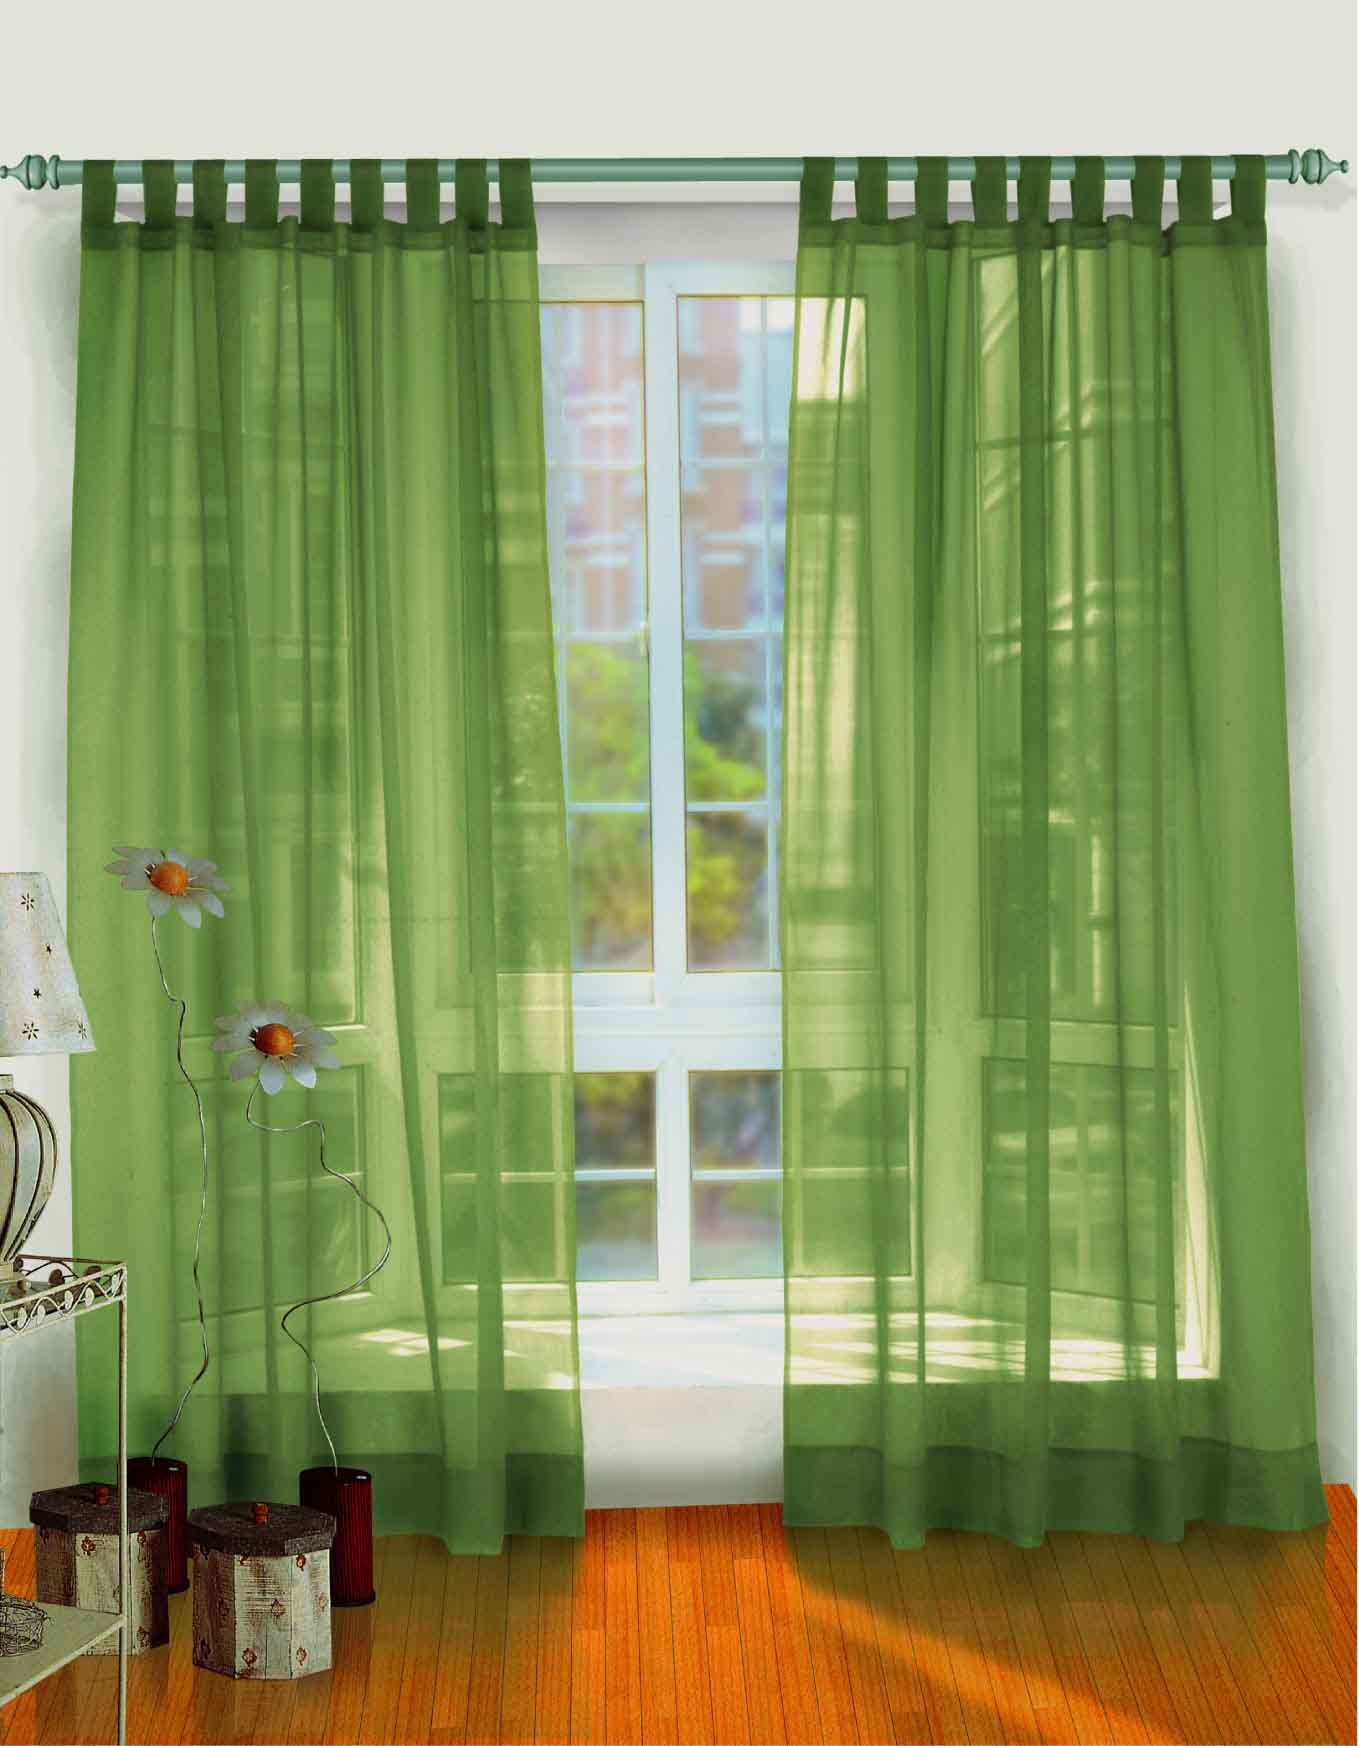 Enticing Bedroom Curtain For Beautiful Window Treatment Ideas (Image 5 of 10)